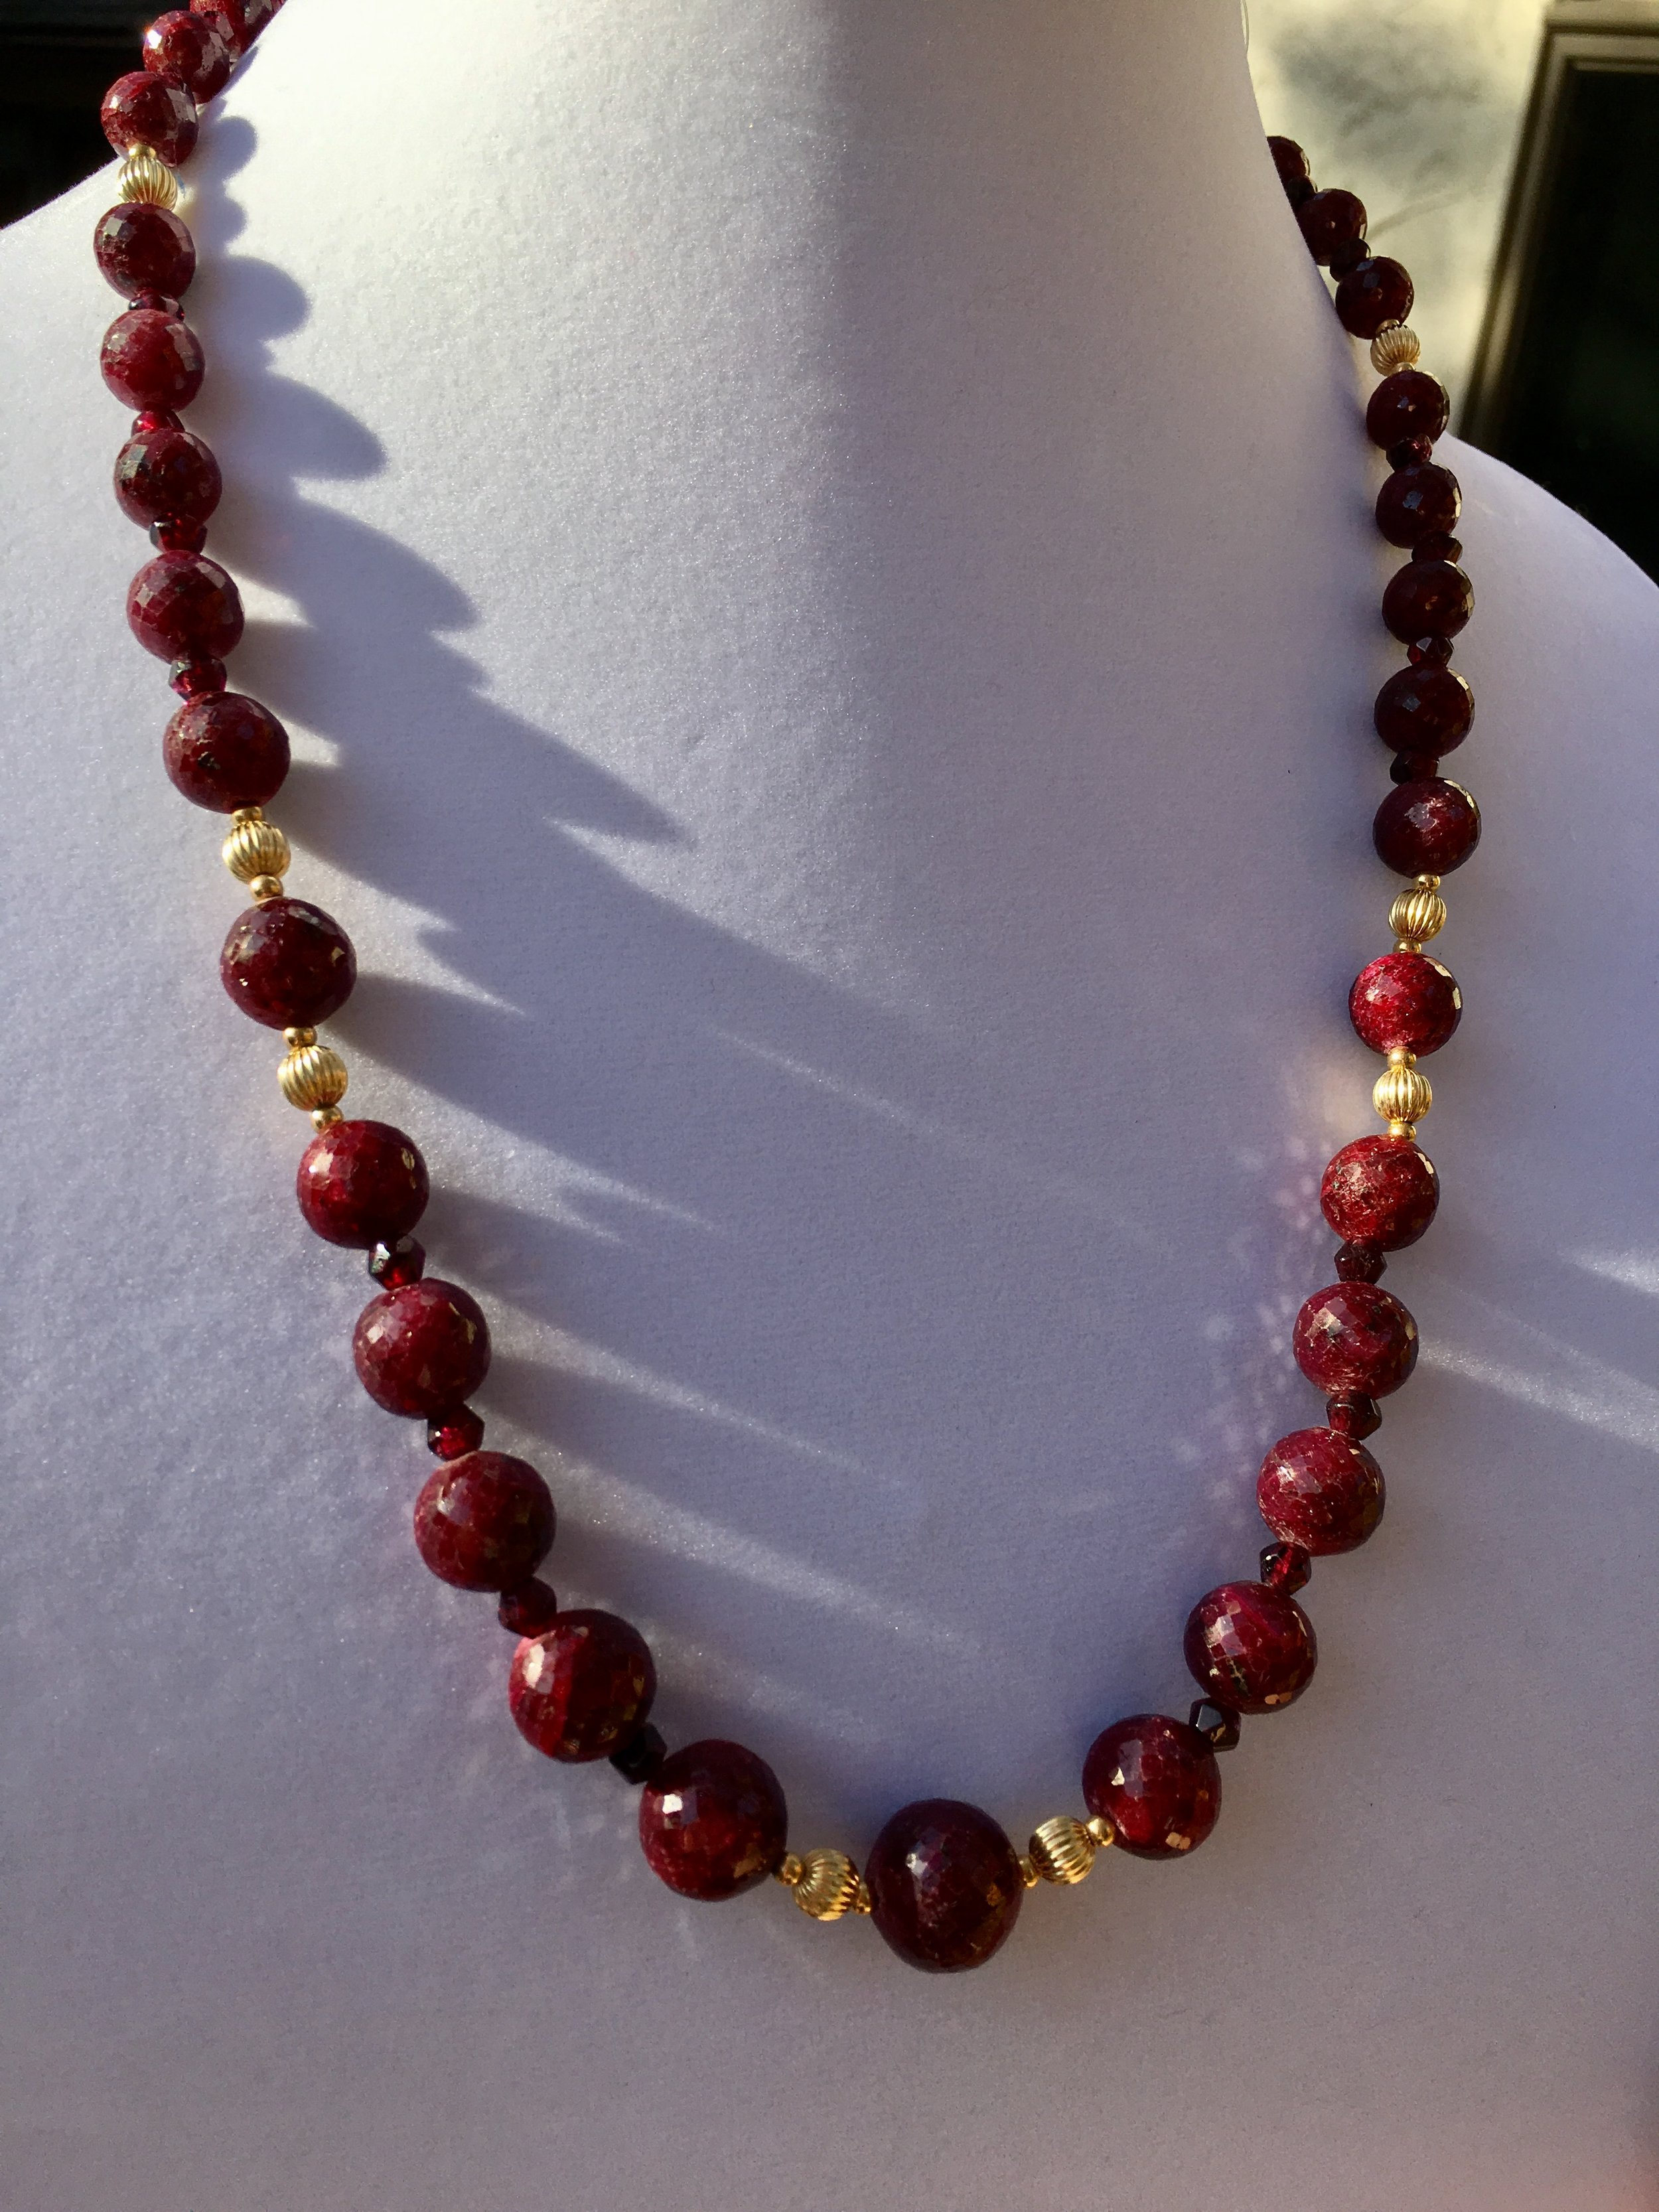 ruby NECKLACe (SOLD)  Ruby necklace with 14k gold beads and handmade gold filled clasp.